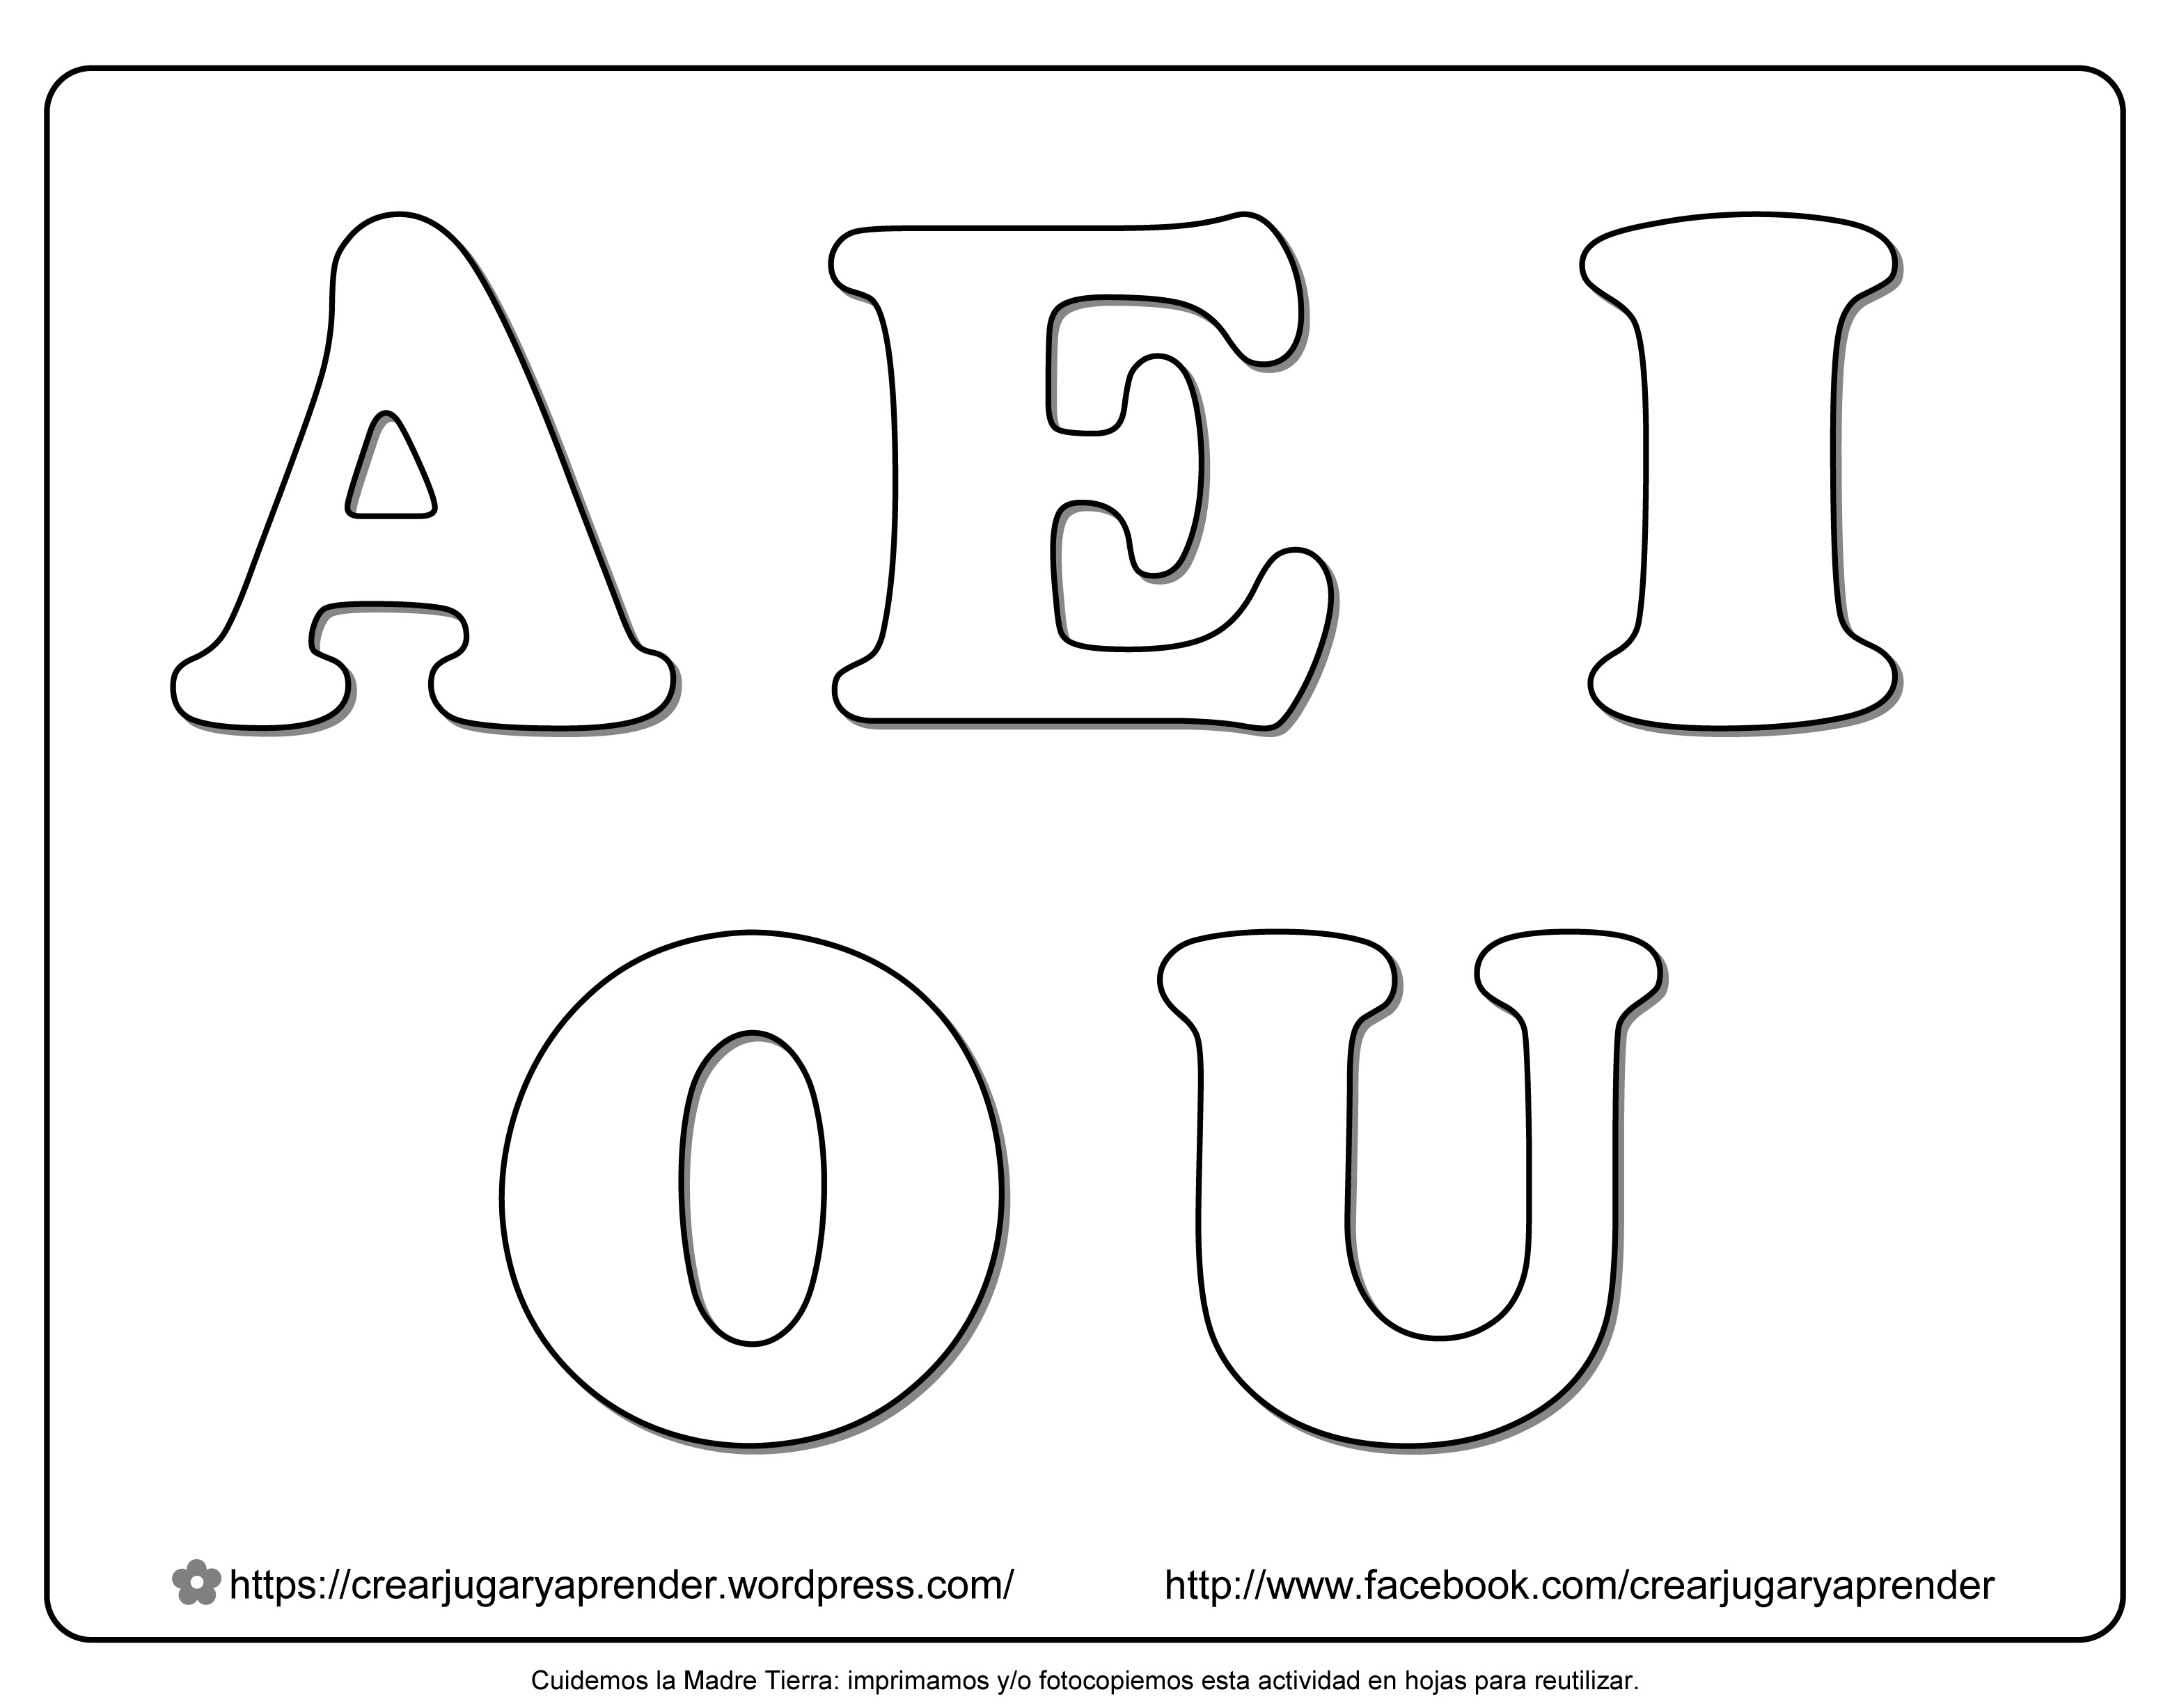 Congrats scripted heart furthermore Coloriage De Visage A Maquiller in addition Claws ripping paper postcard 239833597595623393 additionally Dessin Coeur Gratuit moreover Look To Interest Of Others Printable. on sending love images